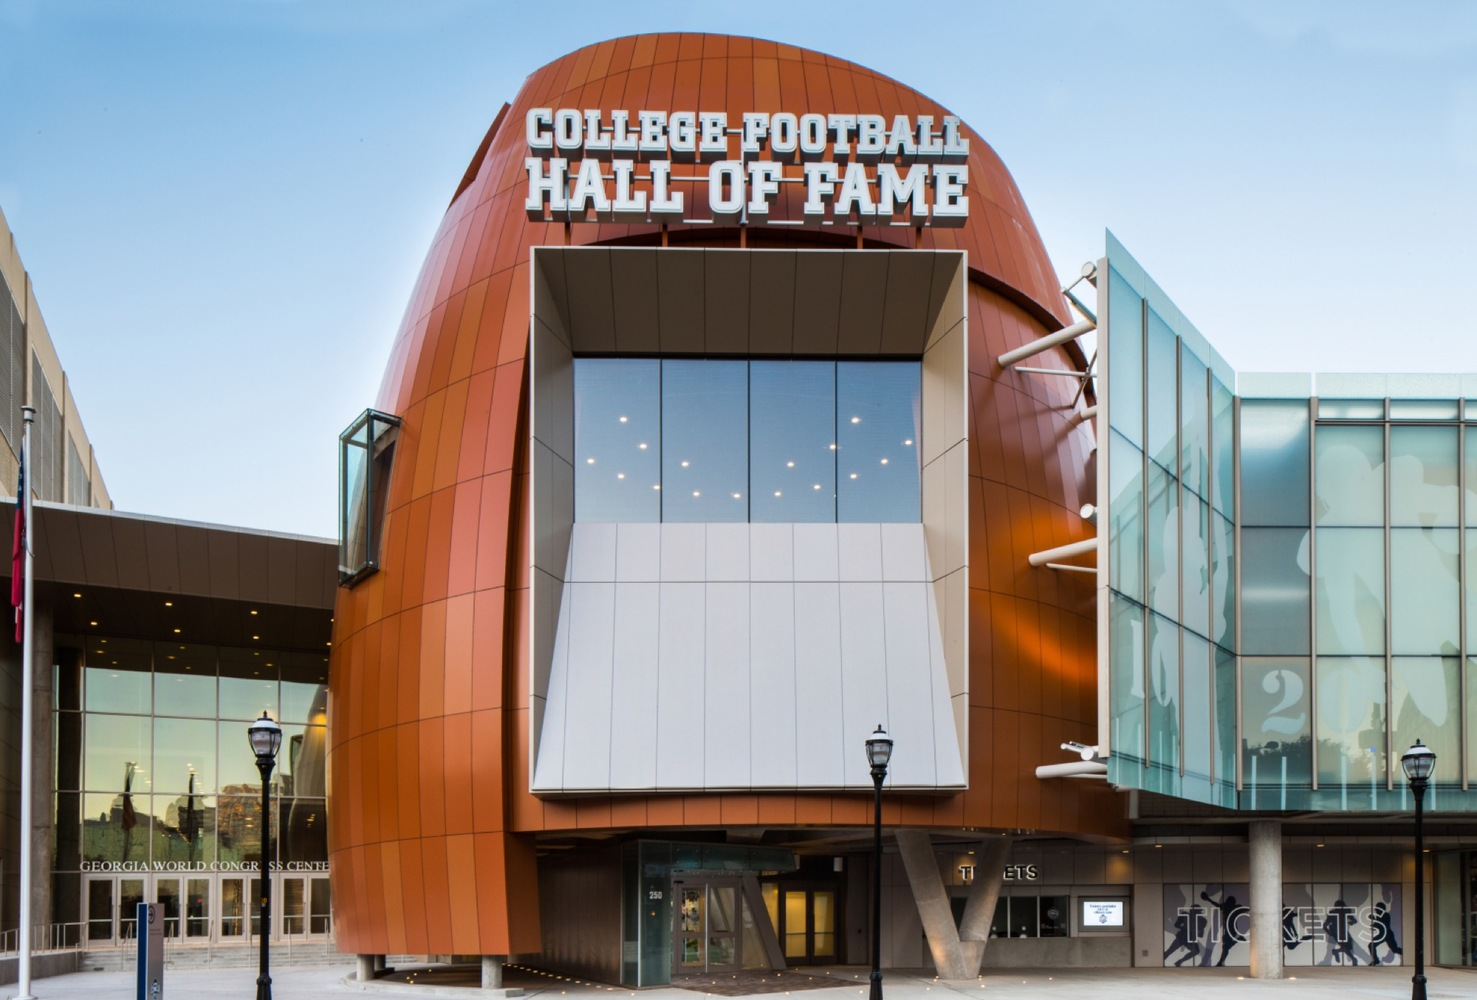 College Football Hall of Fame - Sheet1